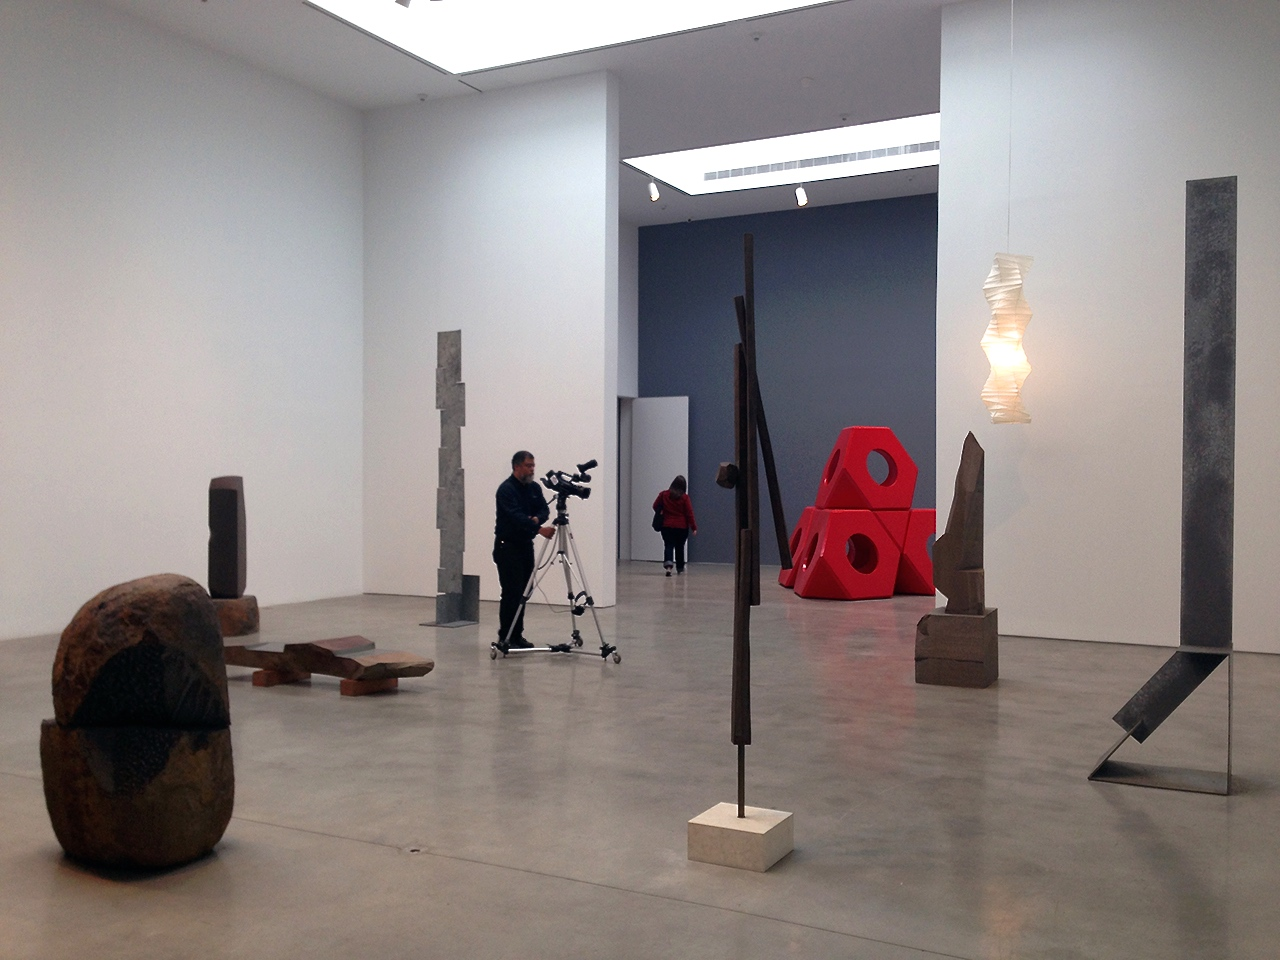 Installation view, 'Isamu Noguchi: Variatons' at Pace Gallery